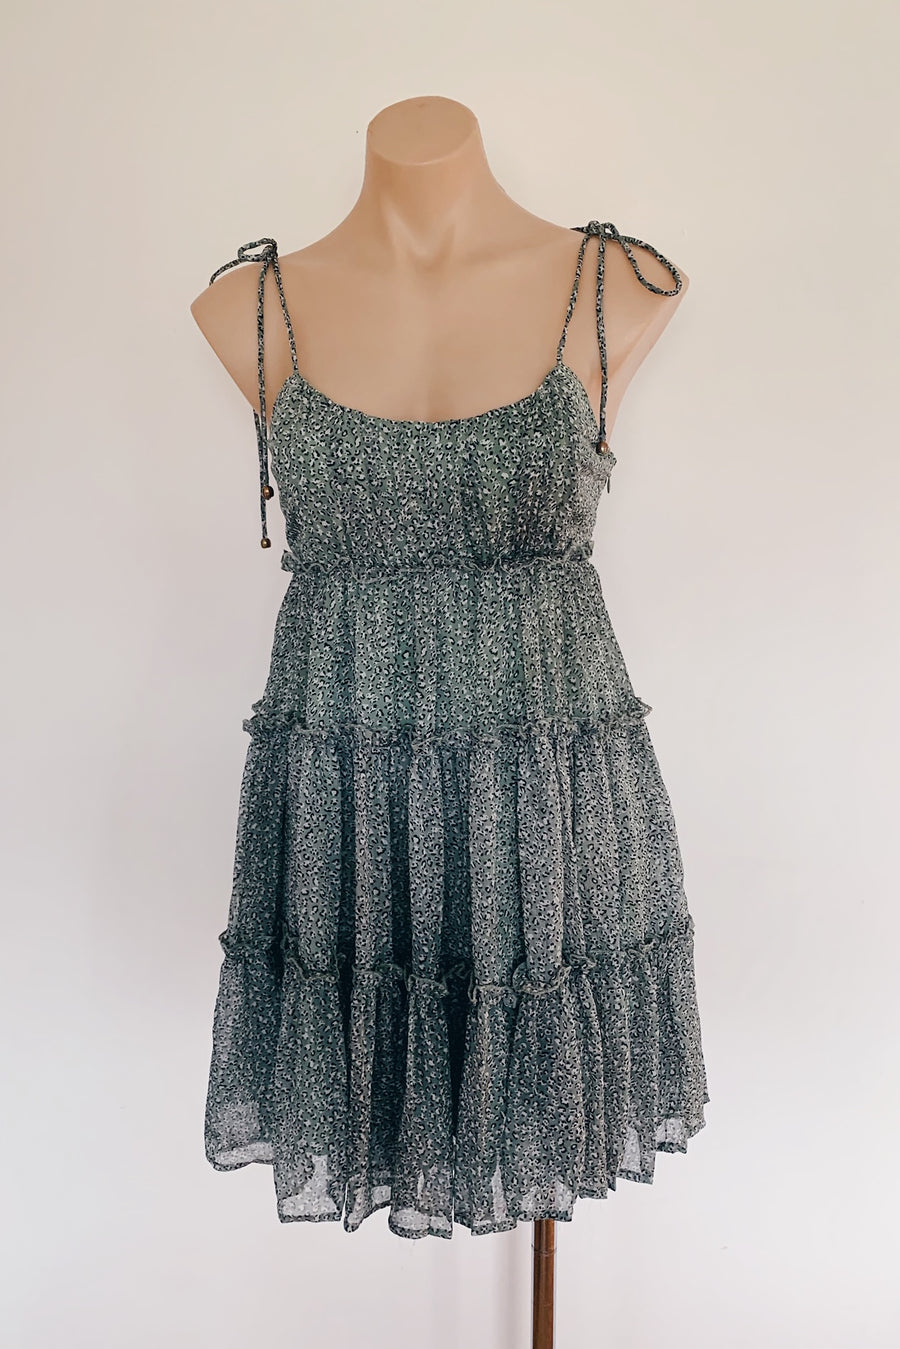 sage green dress with string tie up straps and ruffles